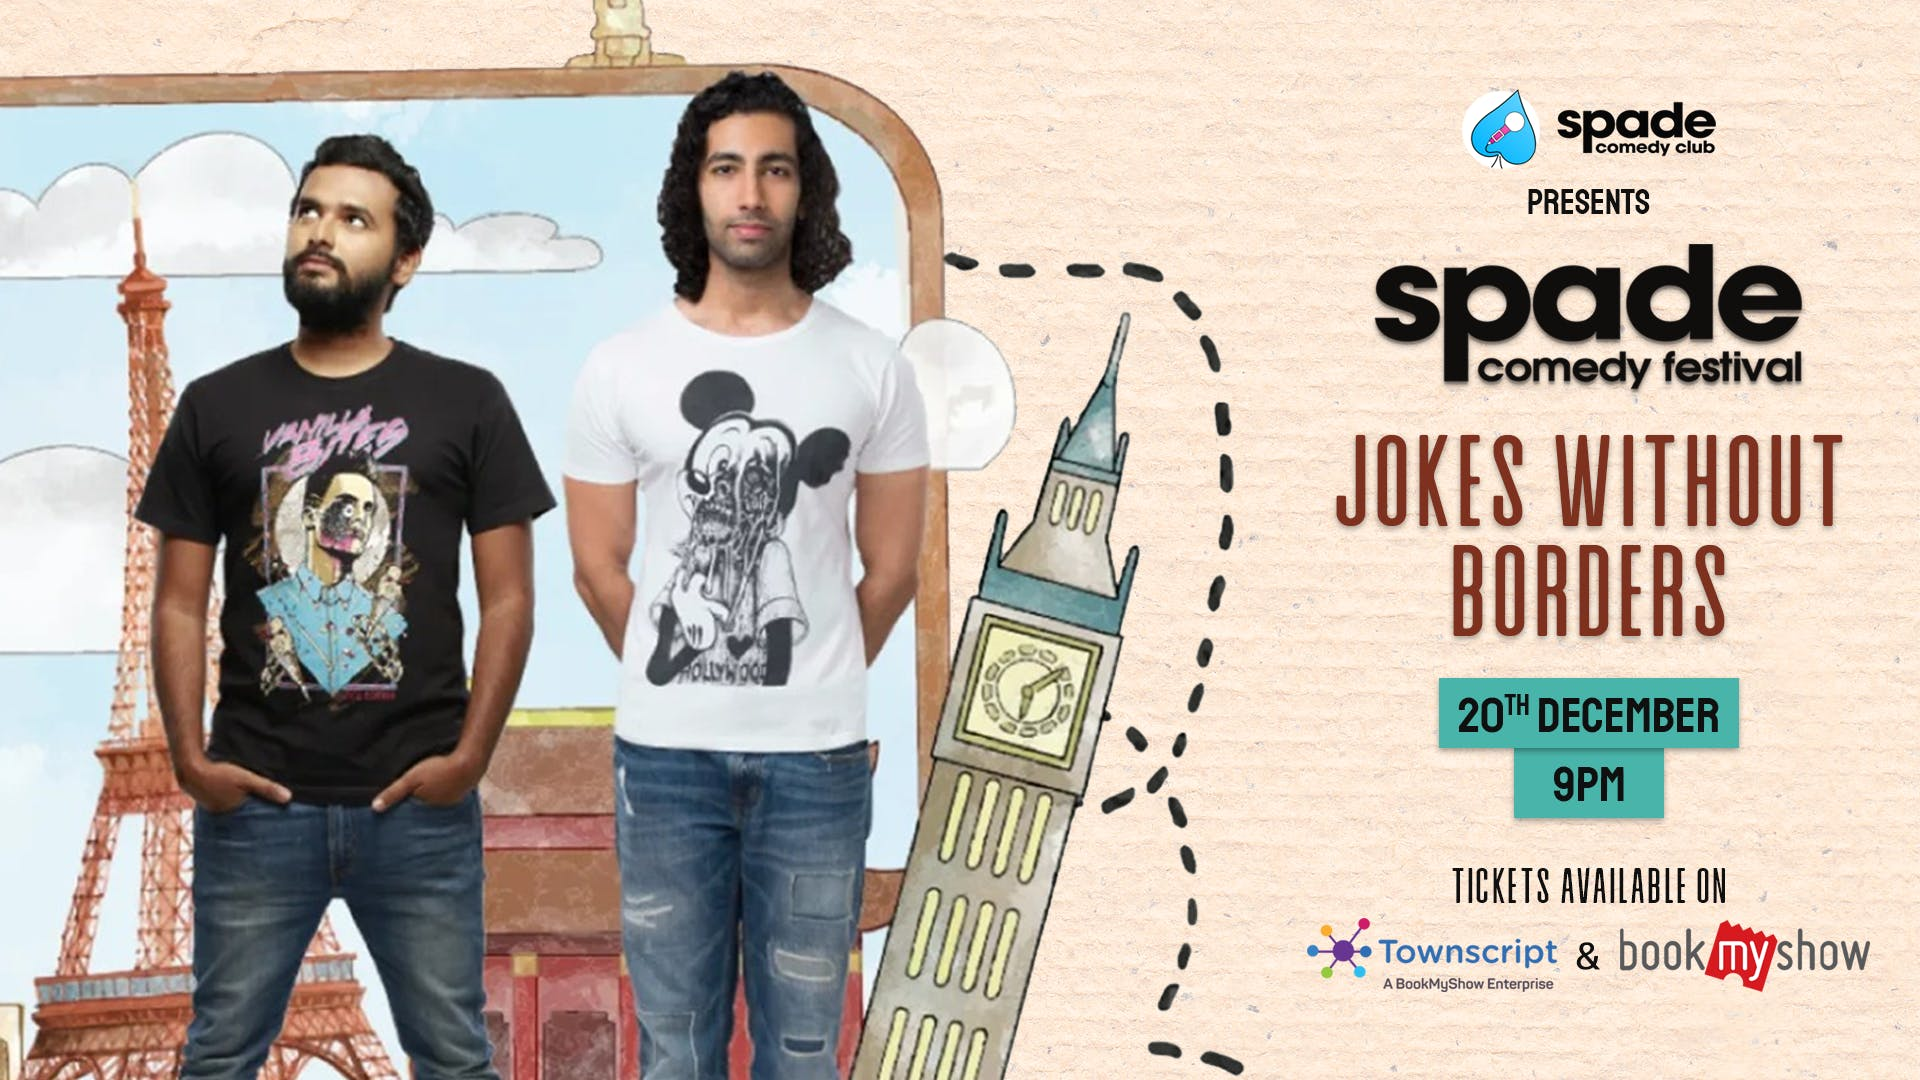 Jokes without Borders by Aadar Malik and Kautuk Srivastava at Spade Comedy Festival